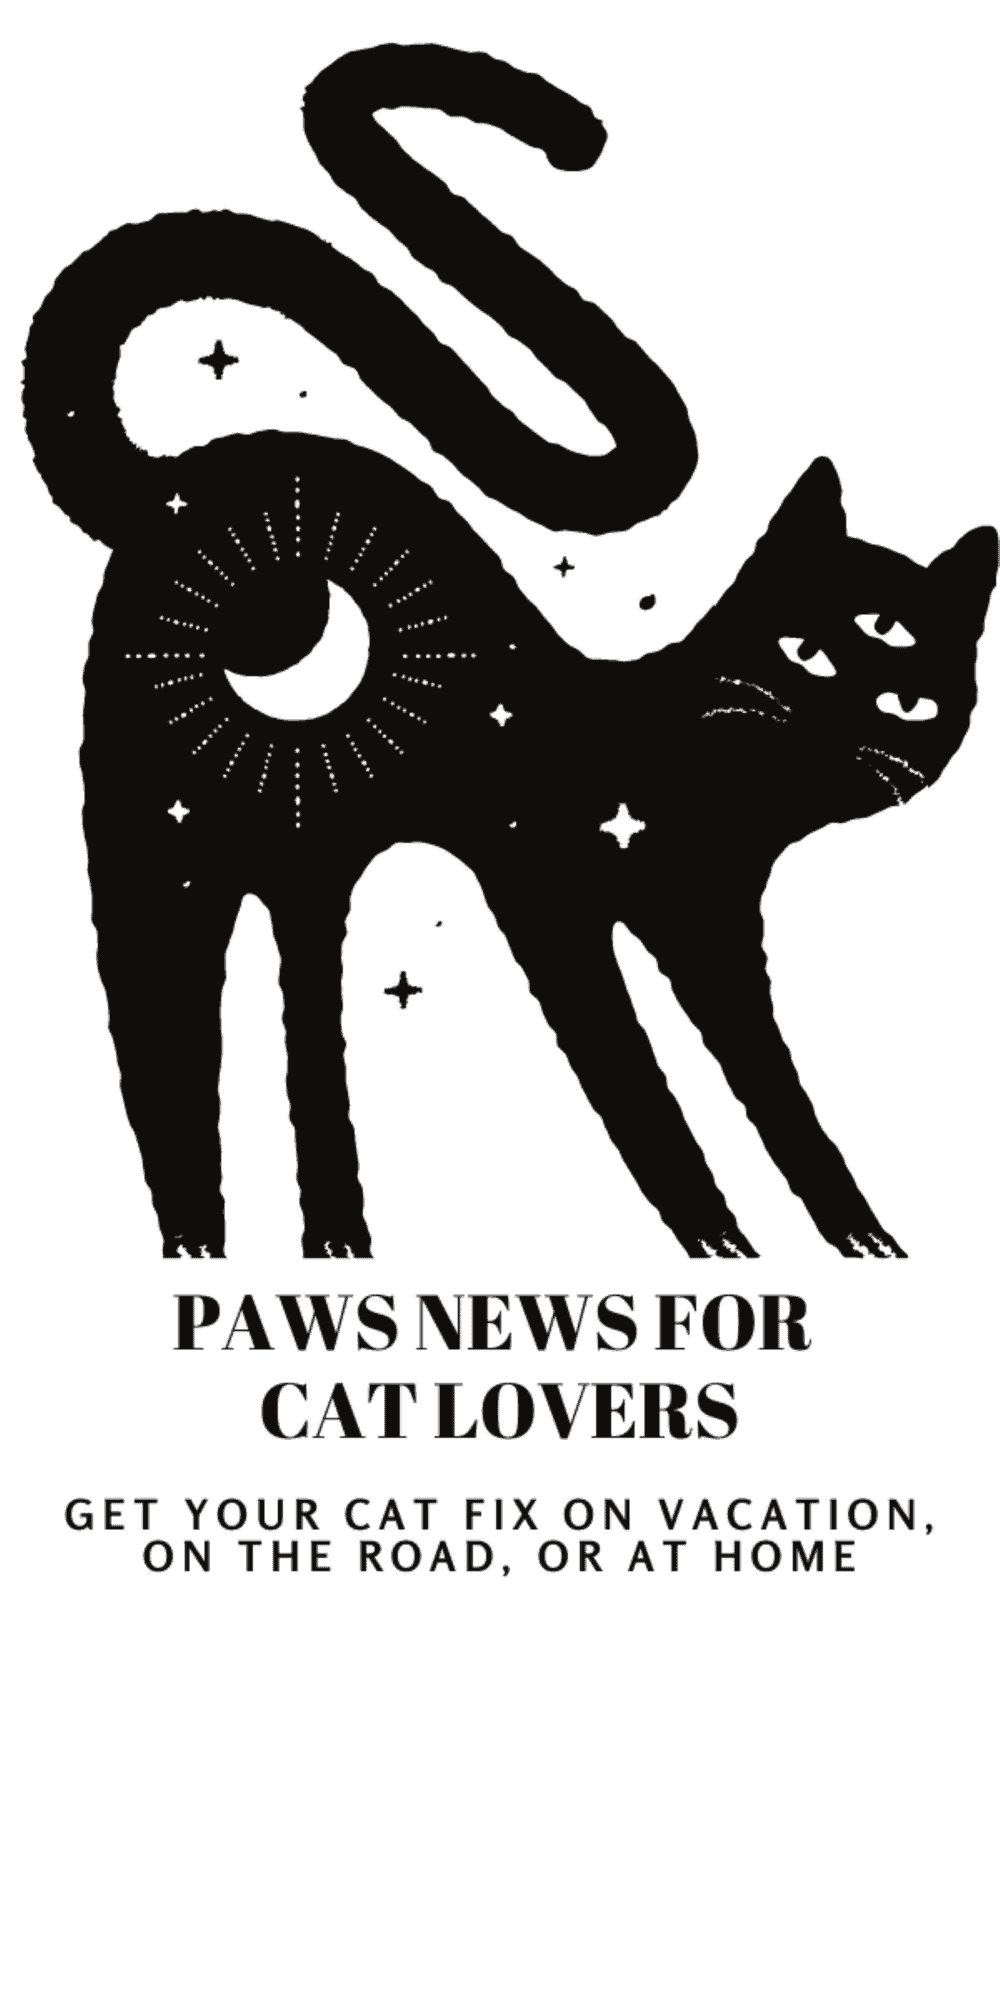 Paws News for Cat Lovers logo